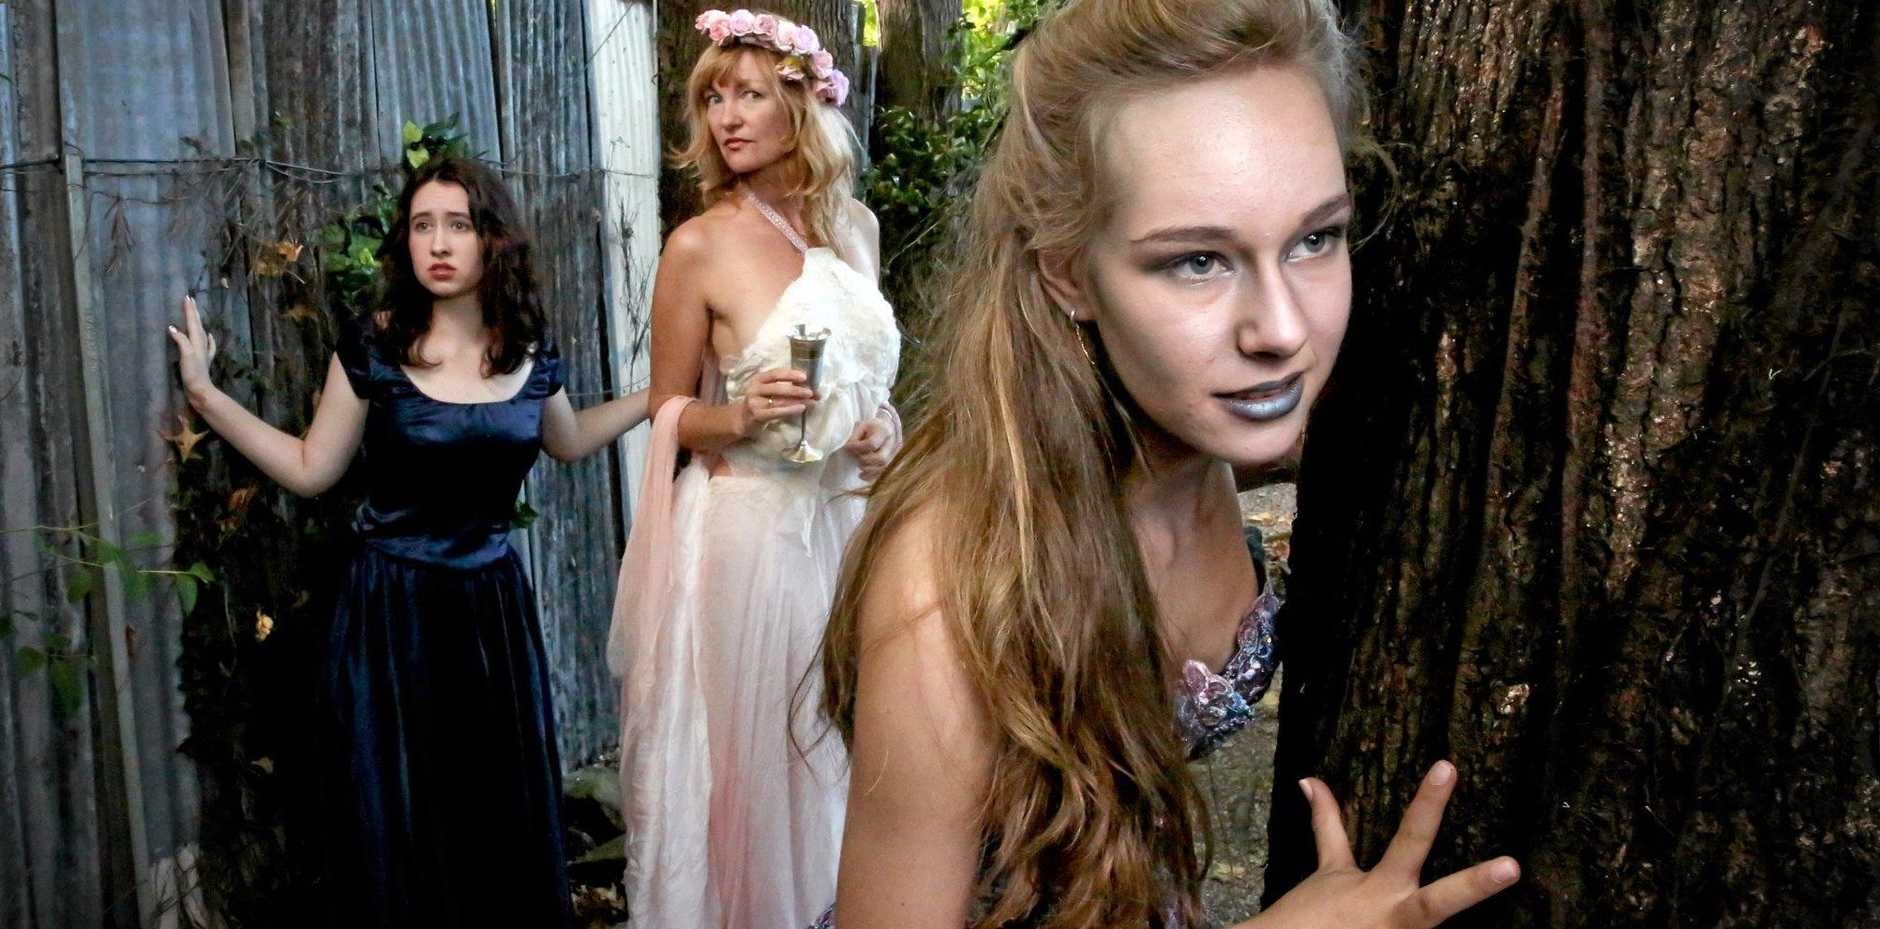 STRONG DEMAND: Zeph Innisfree, Veriste Ferrari and Delphi O'Heart performed in Flutterbies' last Shakespearean production, A Midsummer Night's Dream.